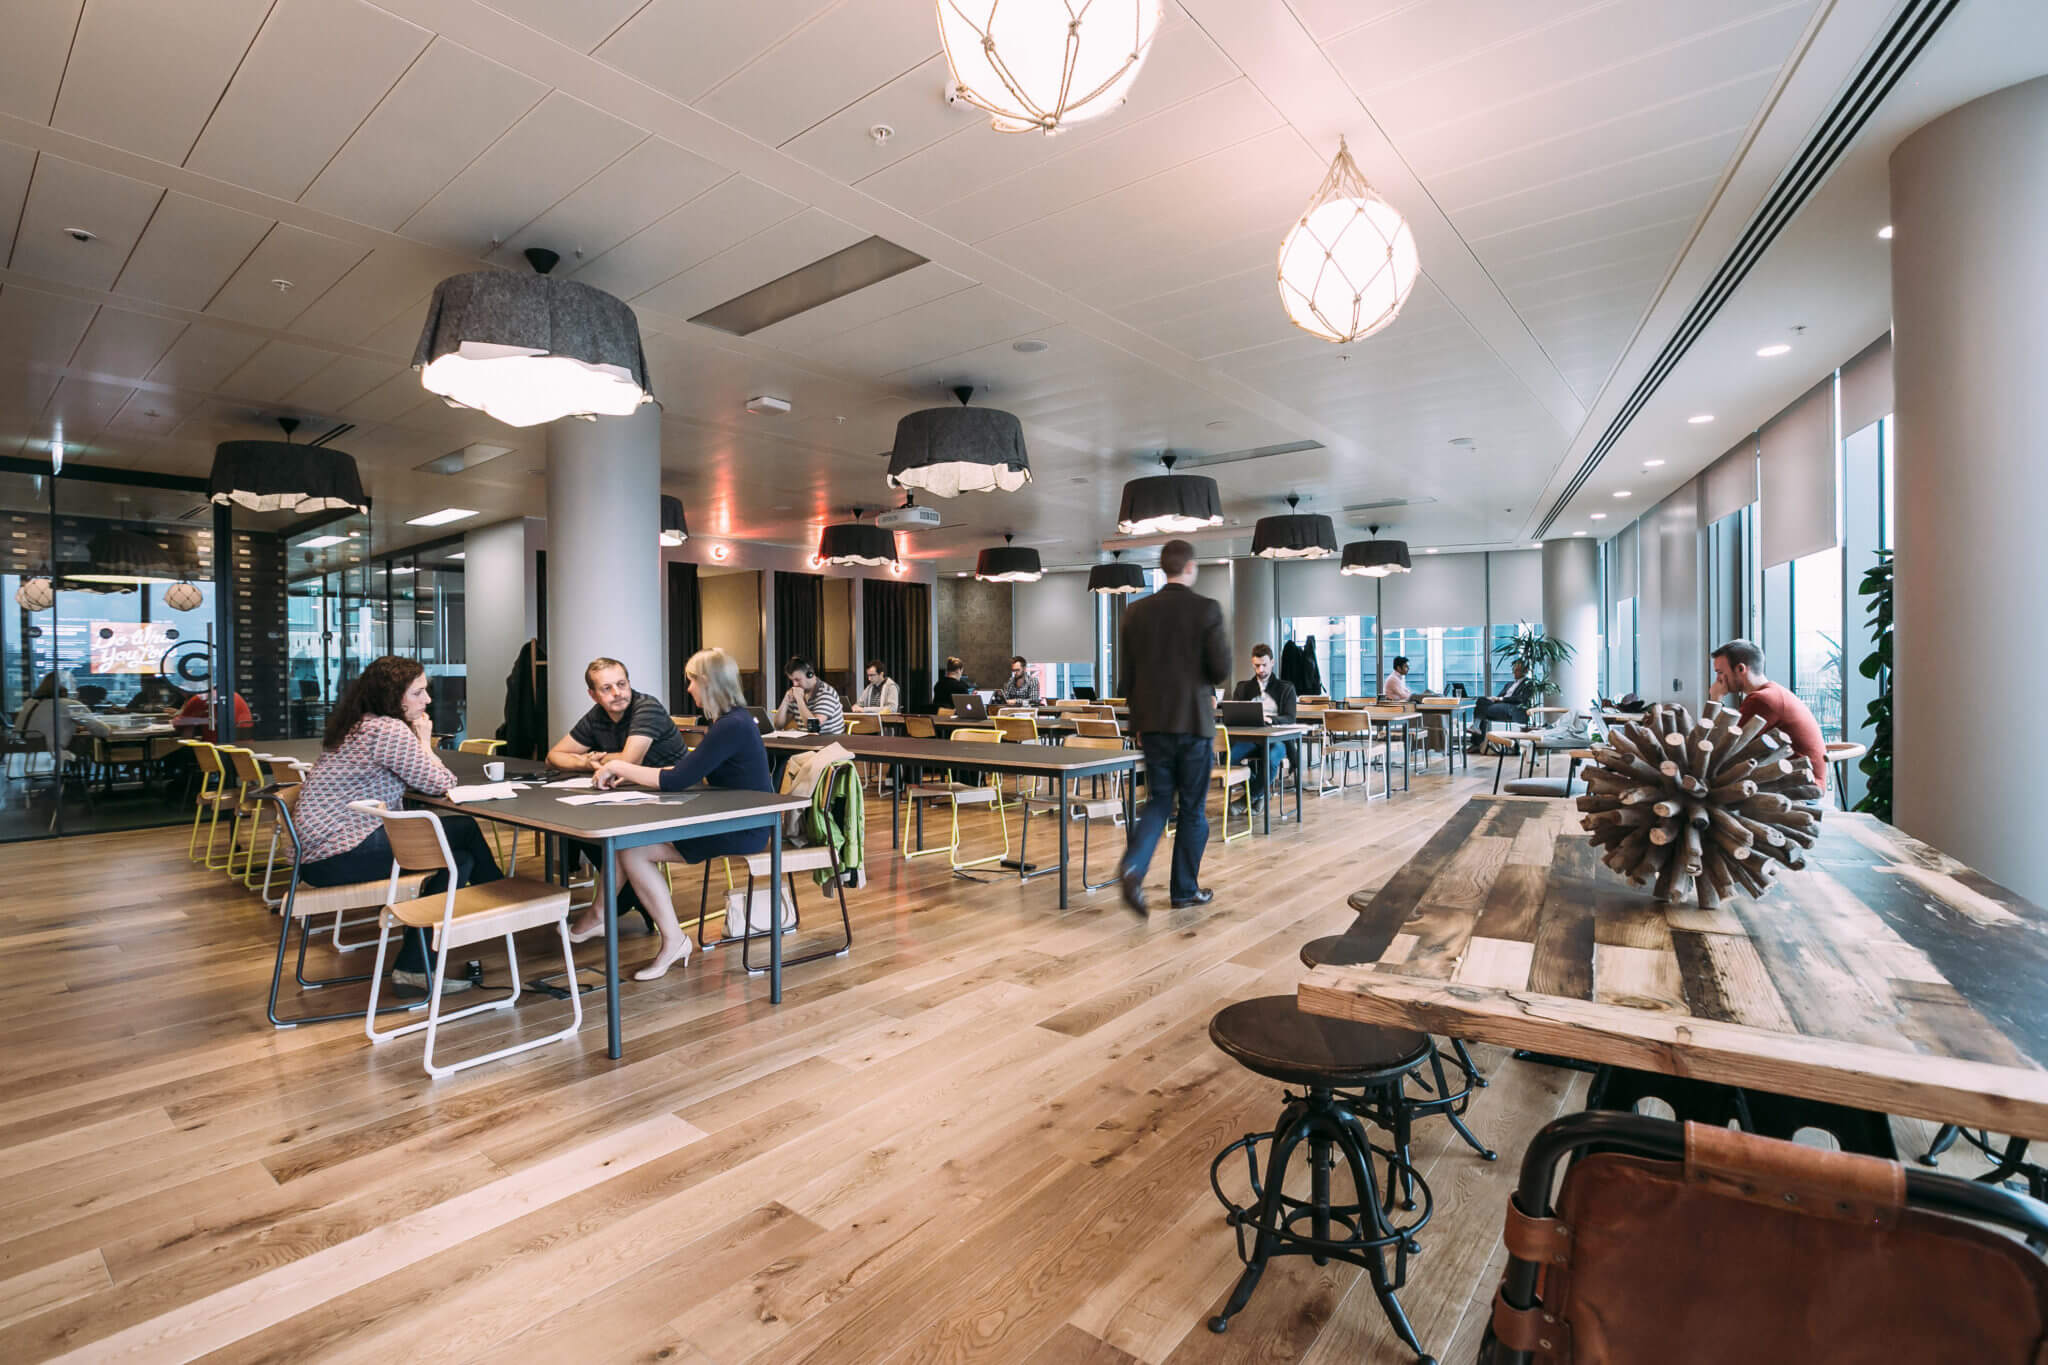 Hot-desking in London: 7 spots to get you started